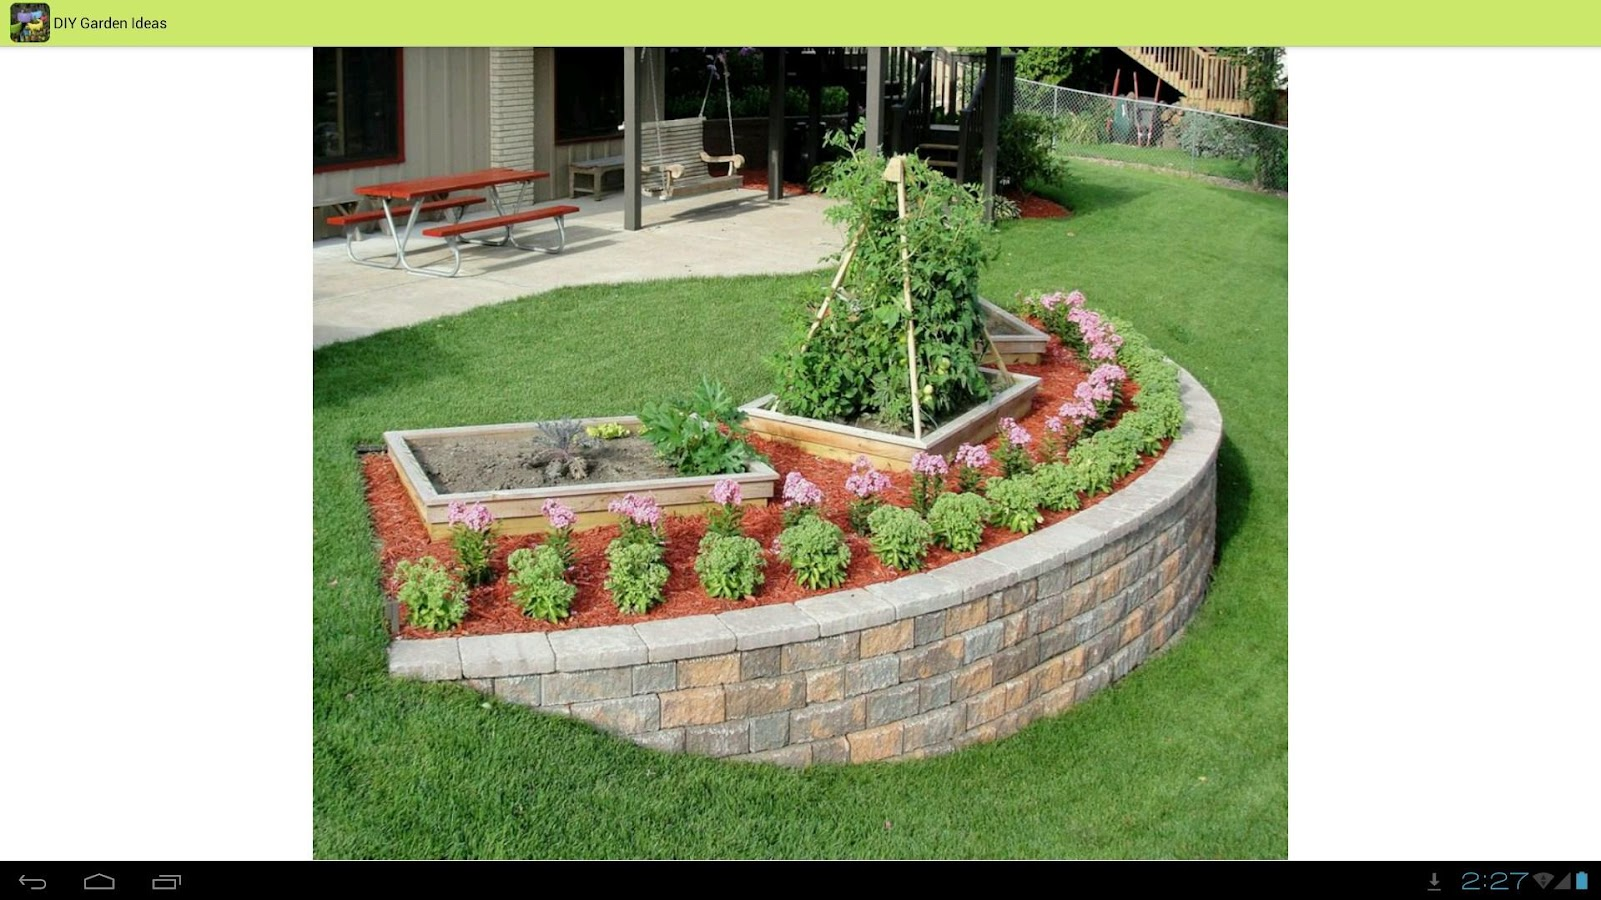 Diy garden ideas android apps on google play Diy home design ideas pictures landscaping